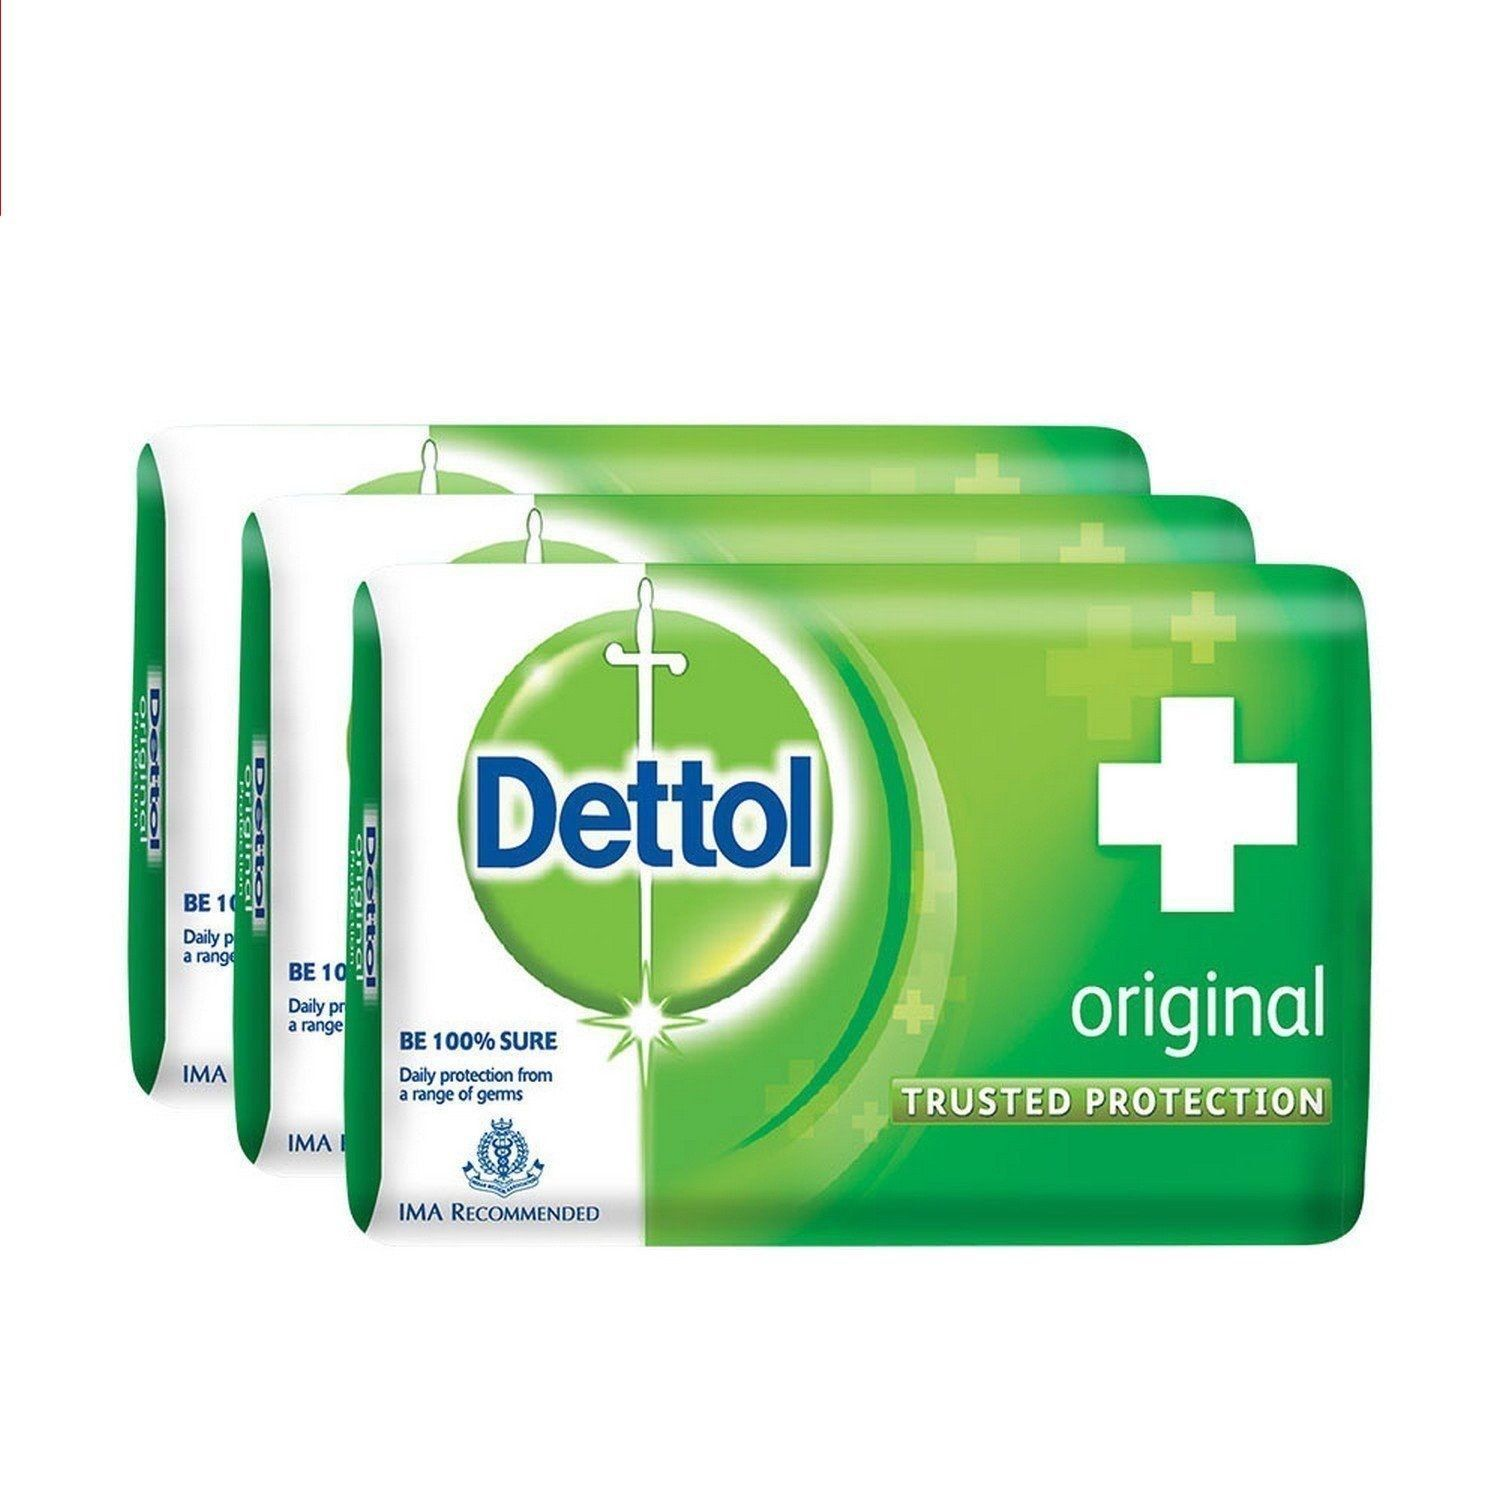 Dettol Orignal Soap Trusted Protection for Family Original 75gm ( pack of 3 )** image 5